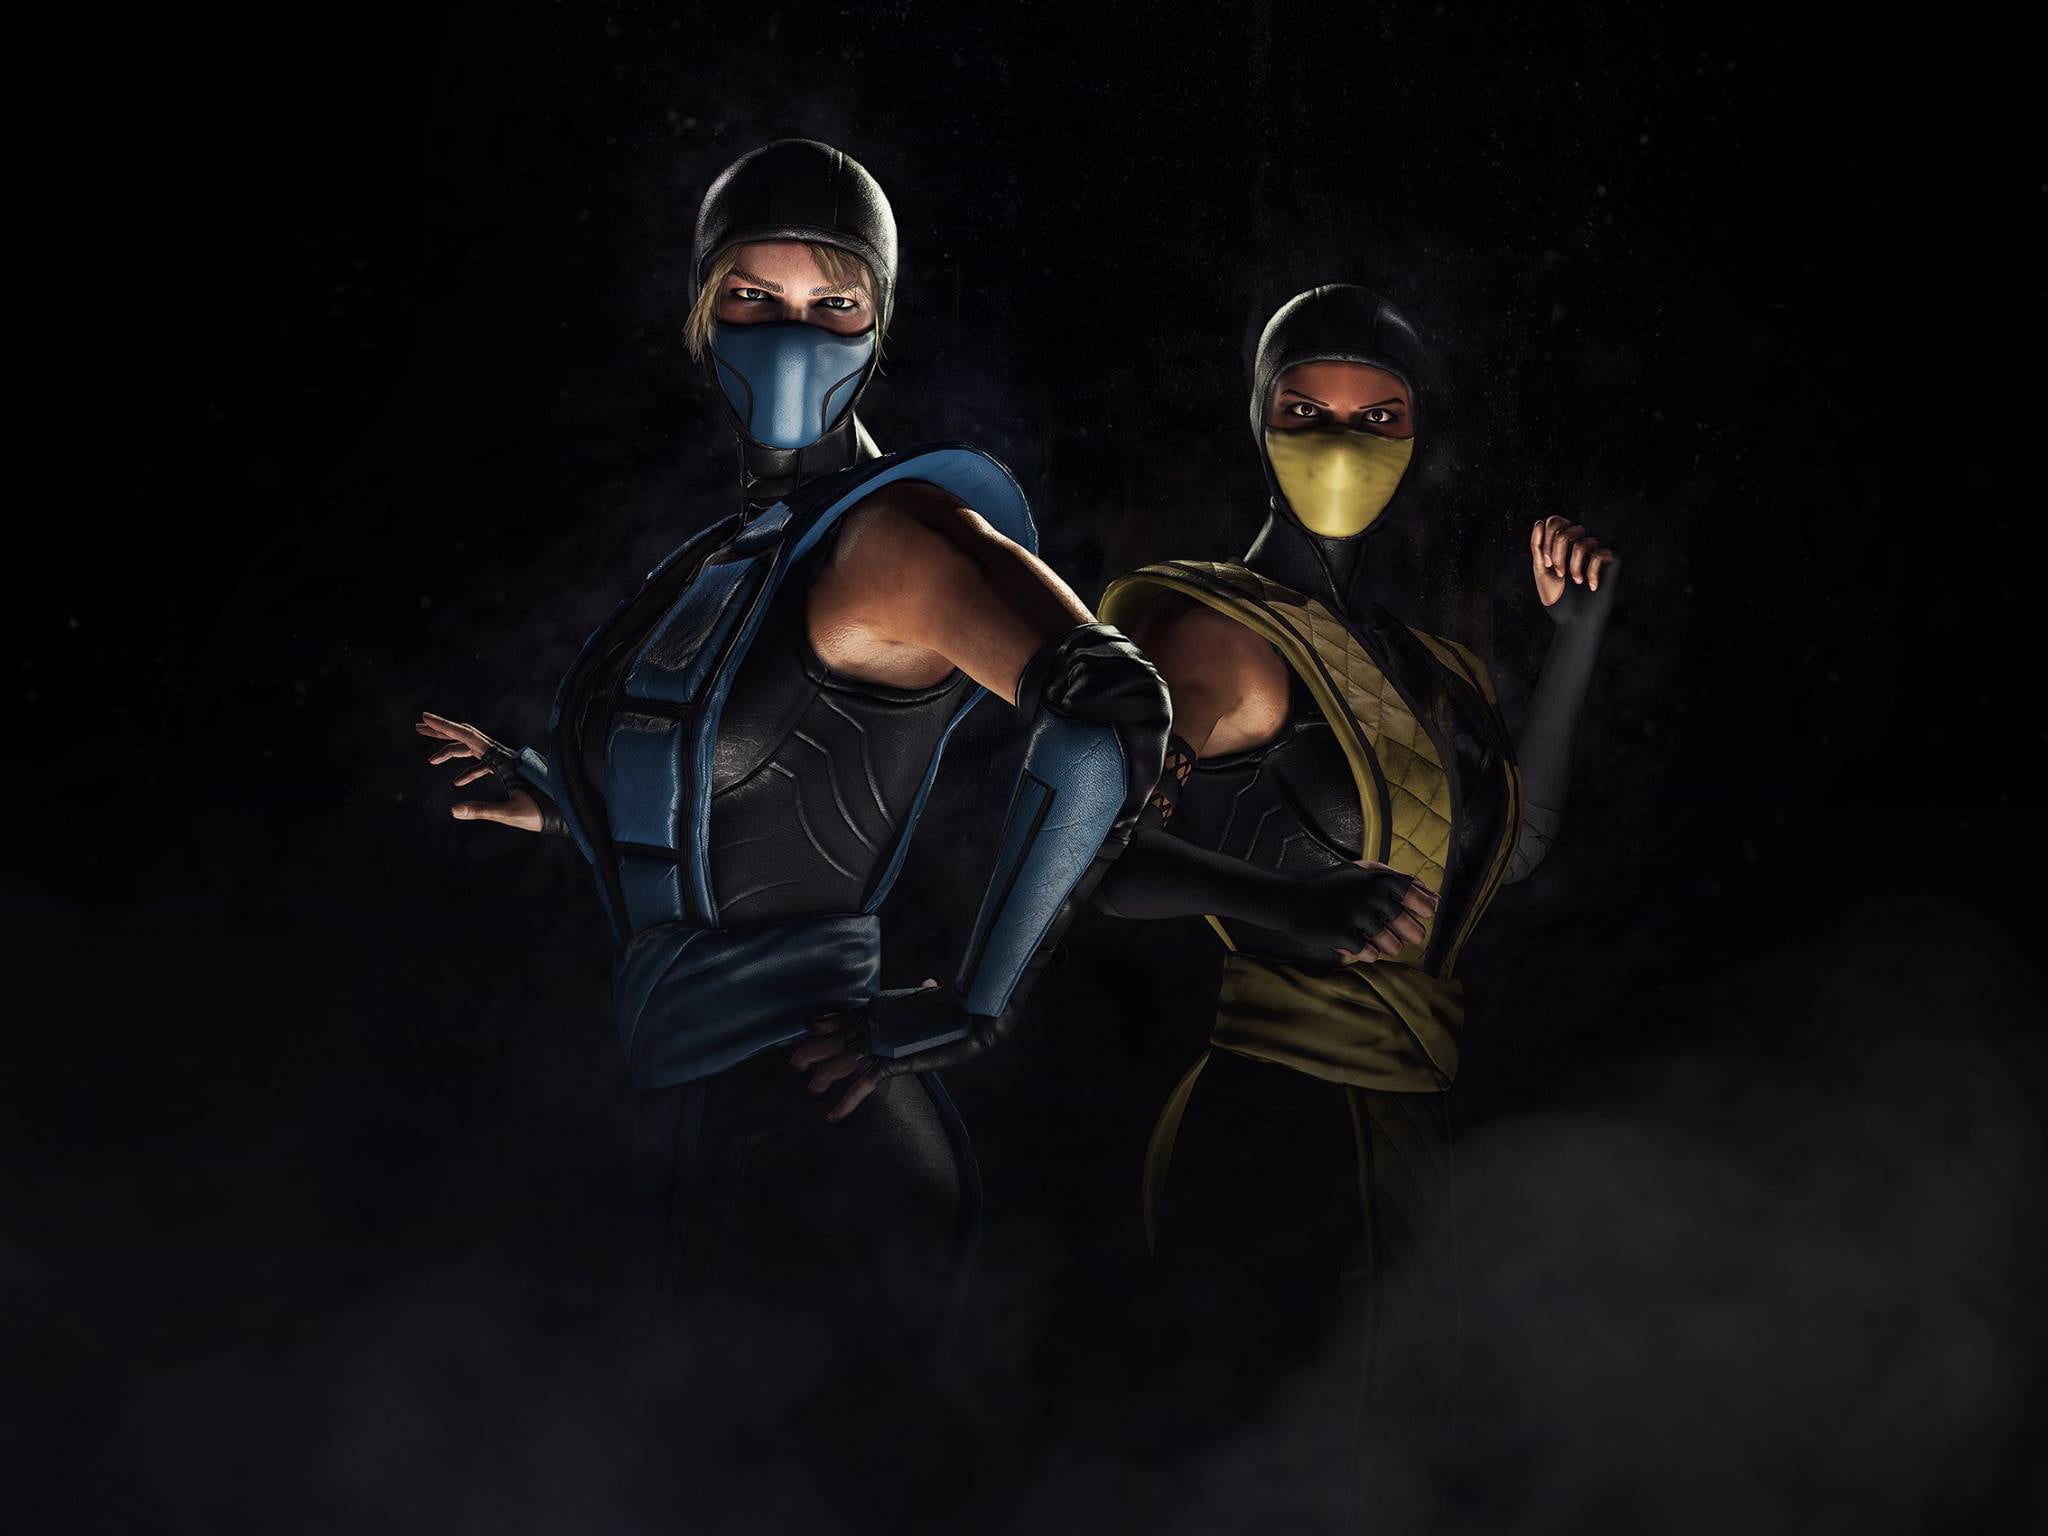 Scorpion Wallpaper Mortal Kombat X Posted By Michelle Anderson